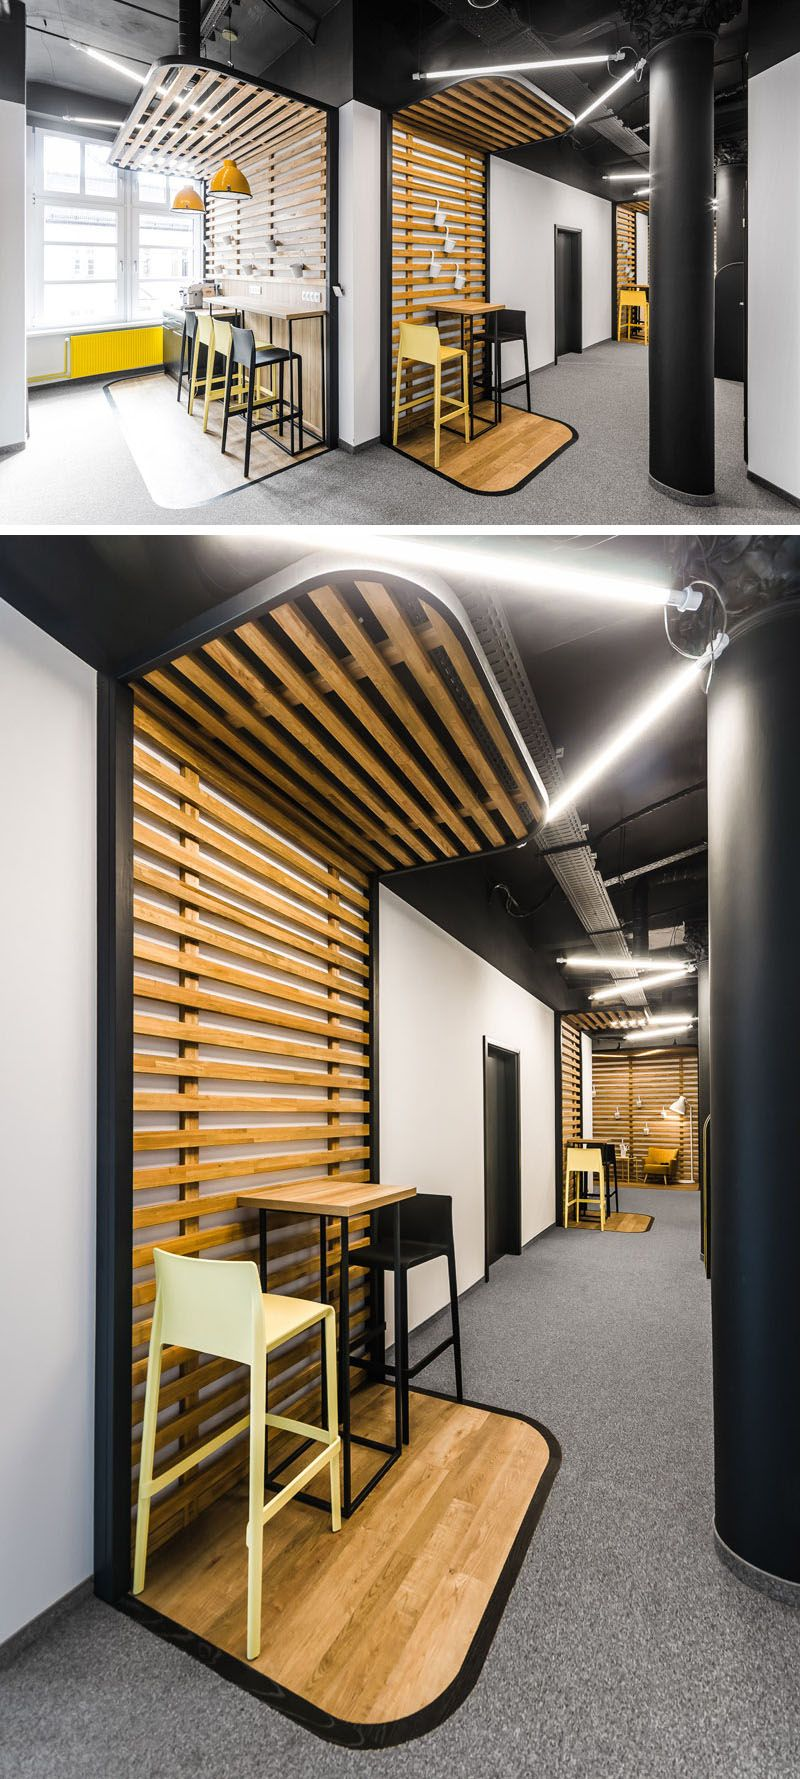 This New Office Interior Uses Wood And Black Frames To Clearly Define Spaces Corporate Office Design Office Interiors Office Interior Design